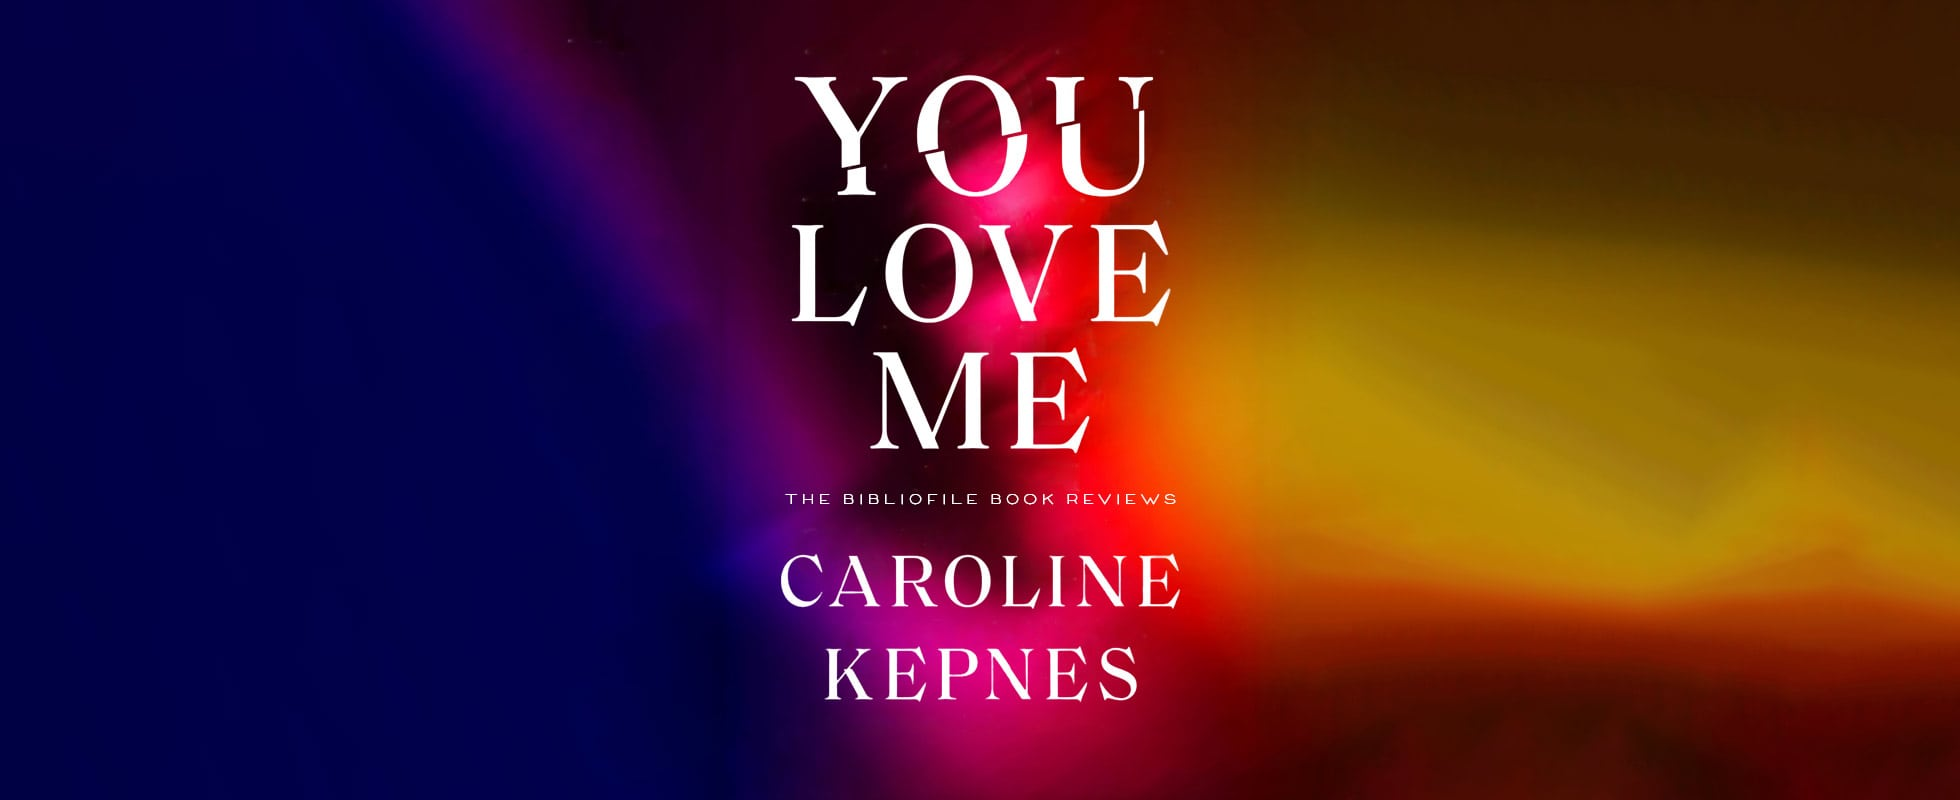 You love me caroline kepnes book review plot summary synopsis chapter summary